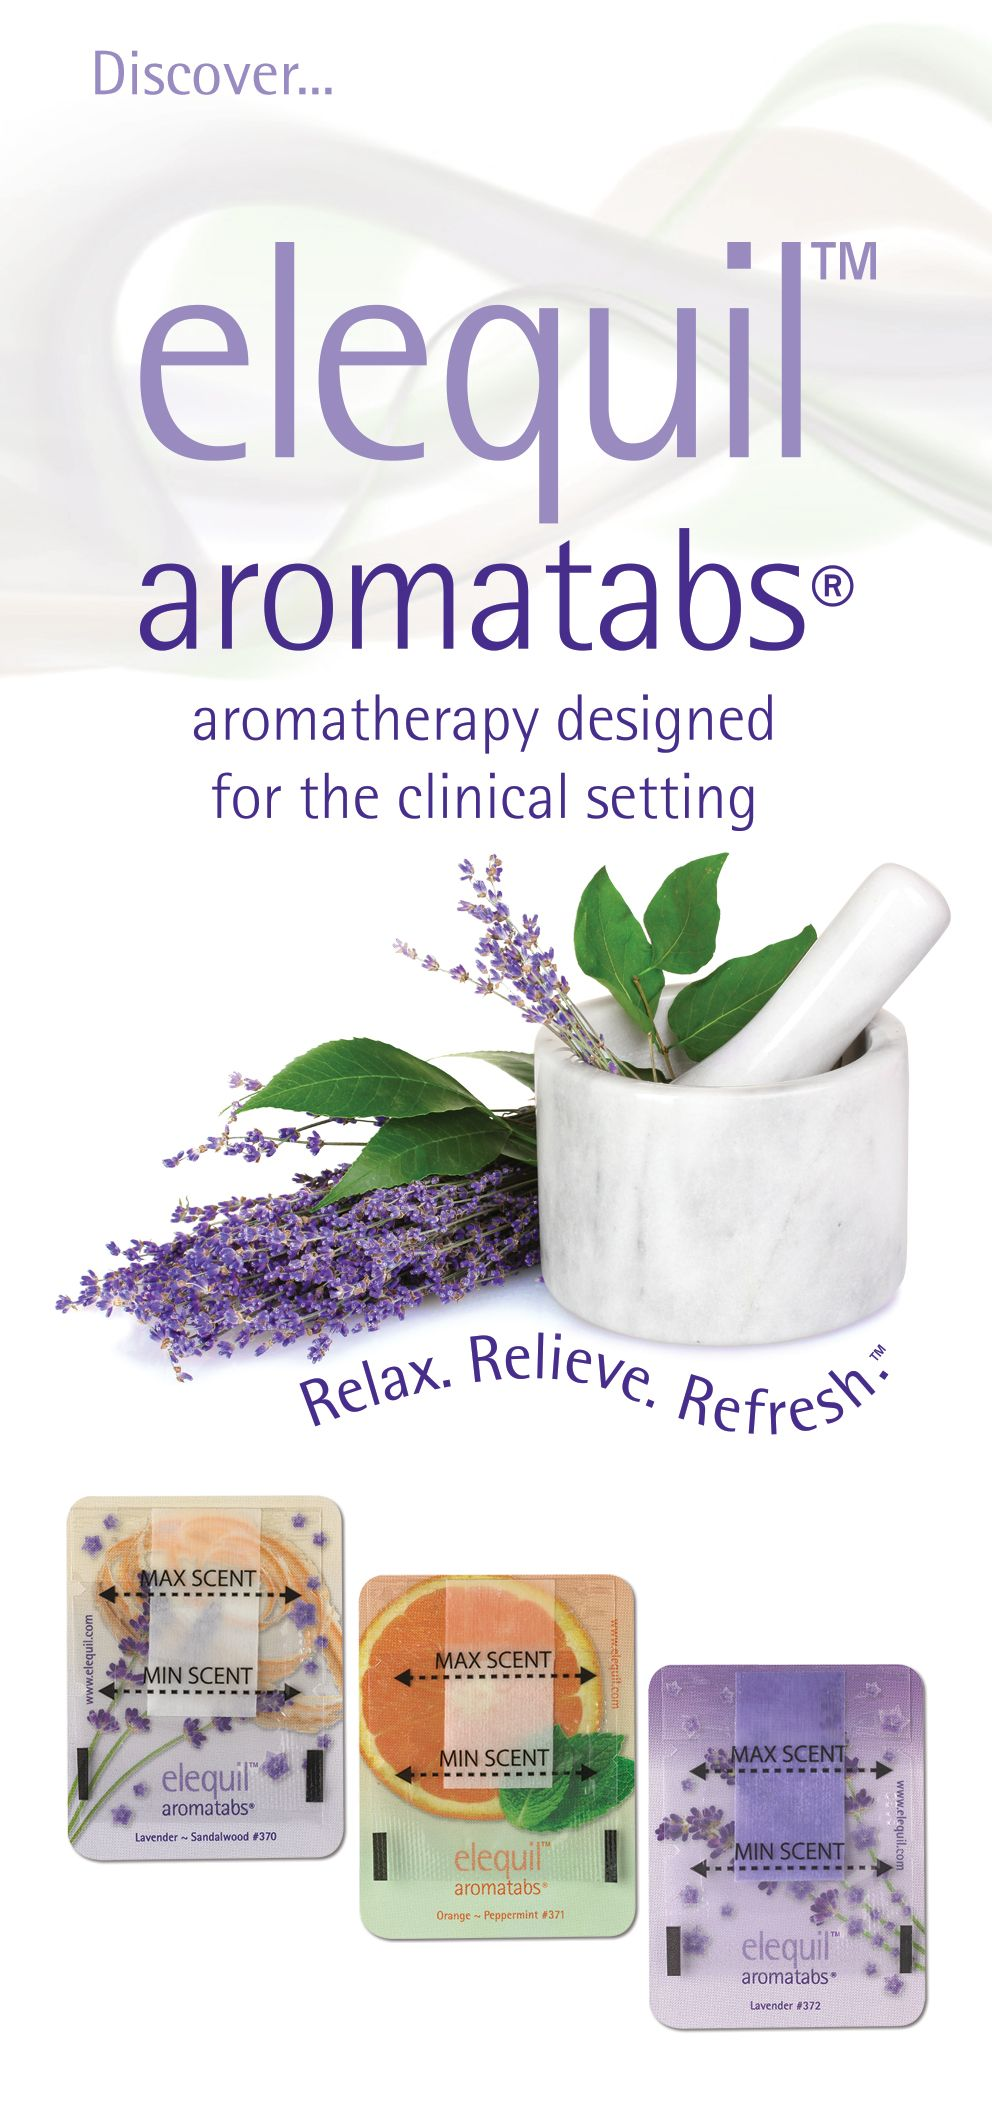 Discover elequil aromatabs aromatherapy you can wear